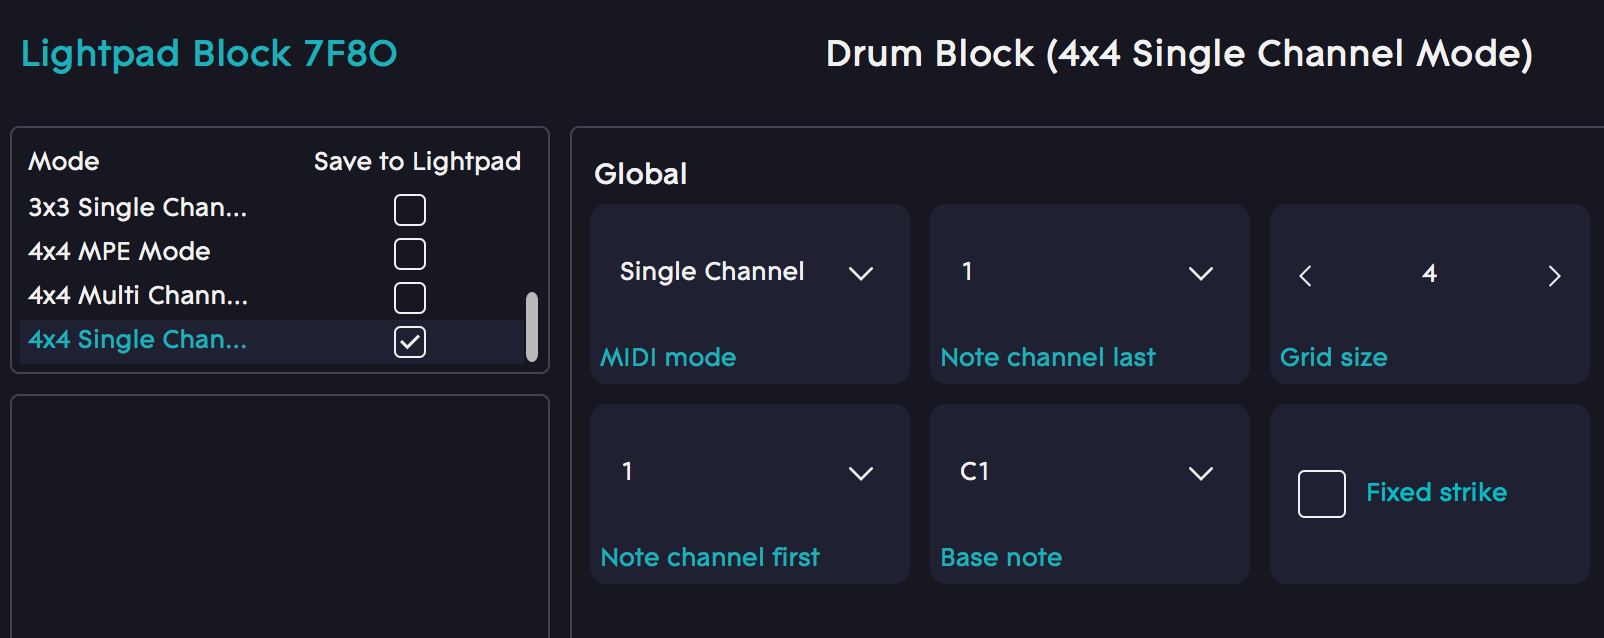 Ableton: Using the Lightpad Block with Ableton Live's Drum Rack